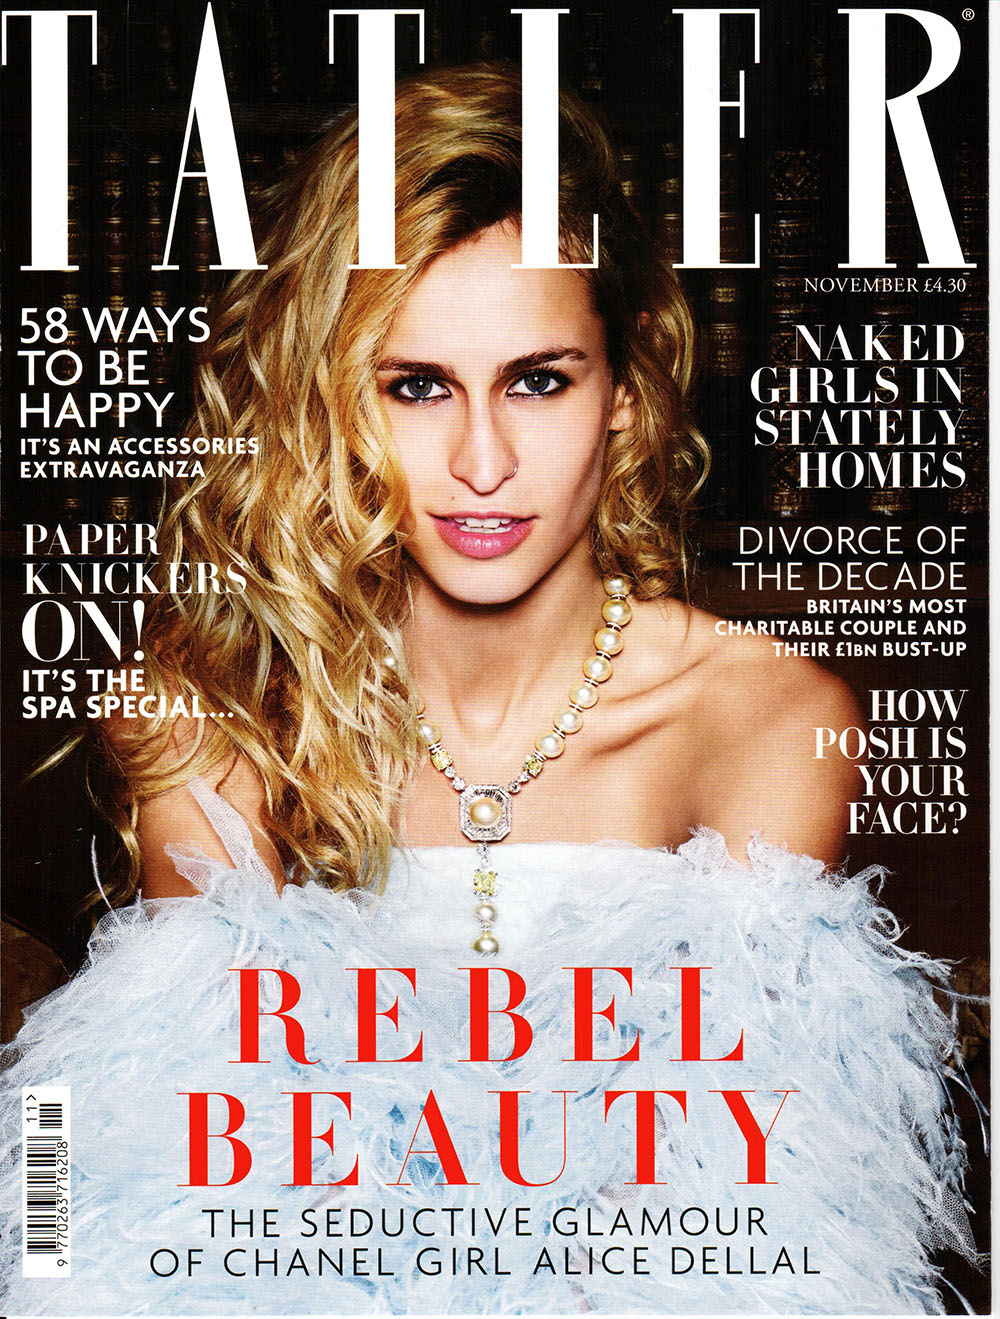 Tatler Nov 2014 cover.jpg